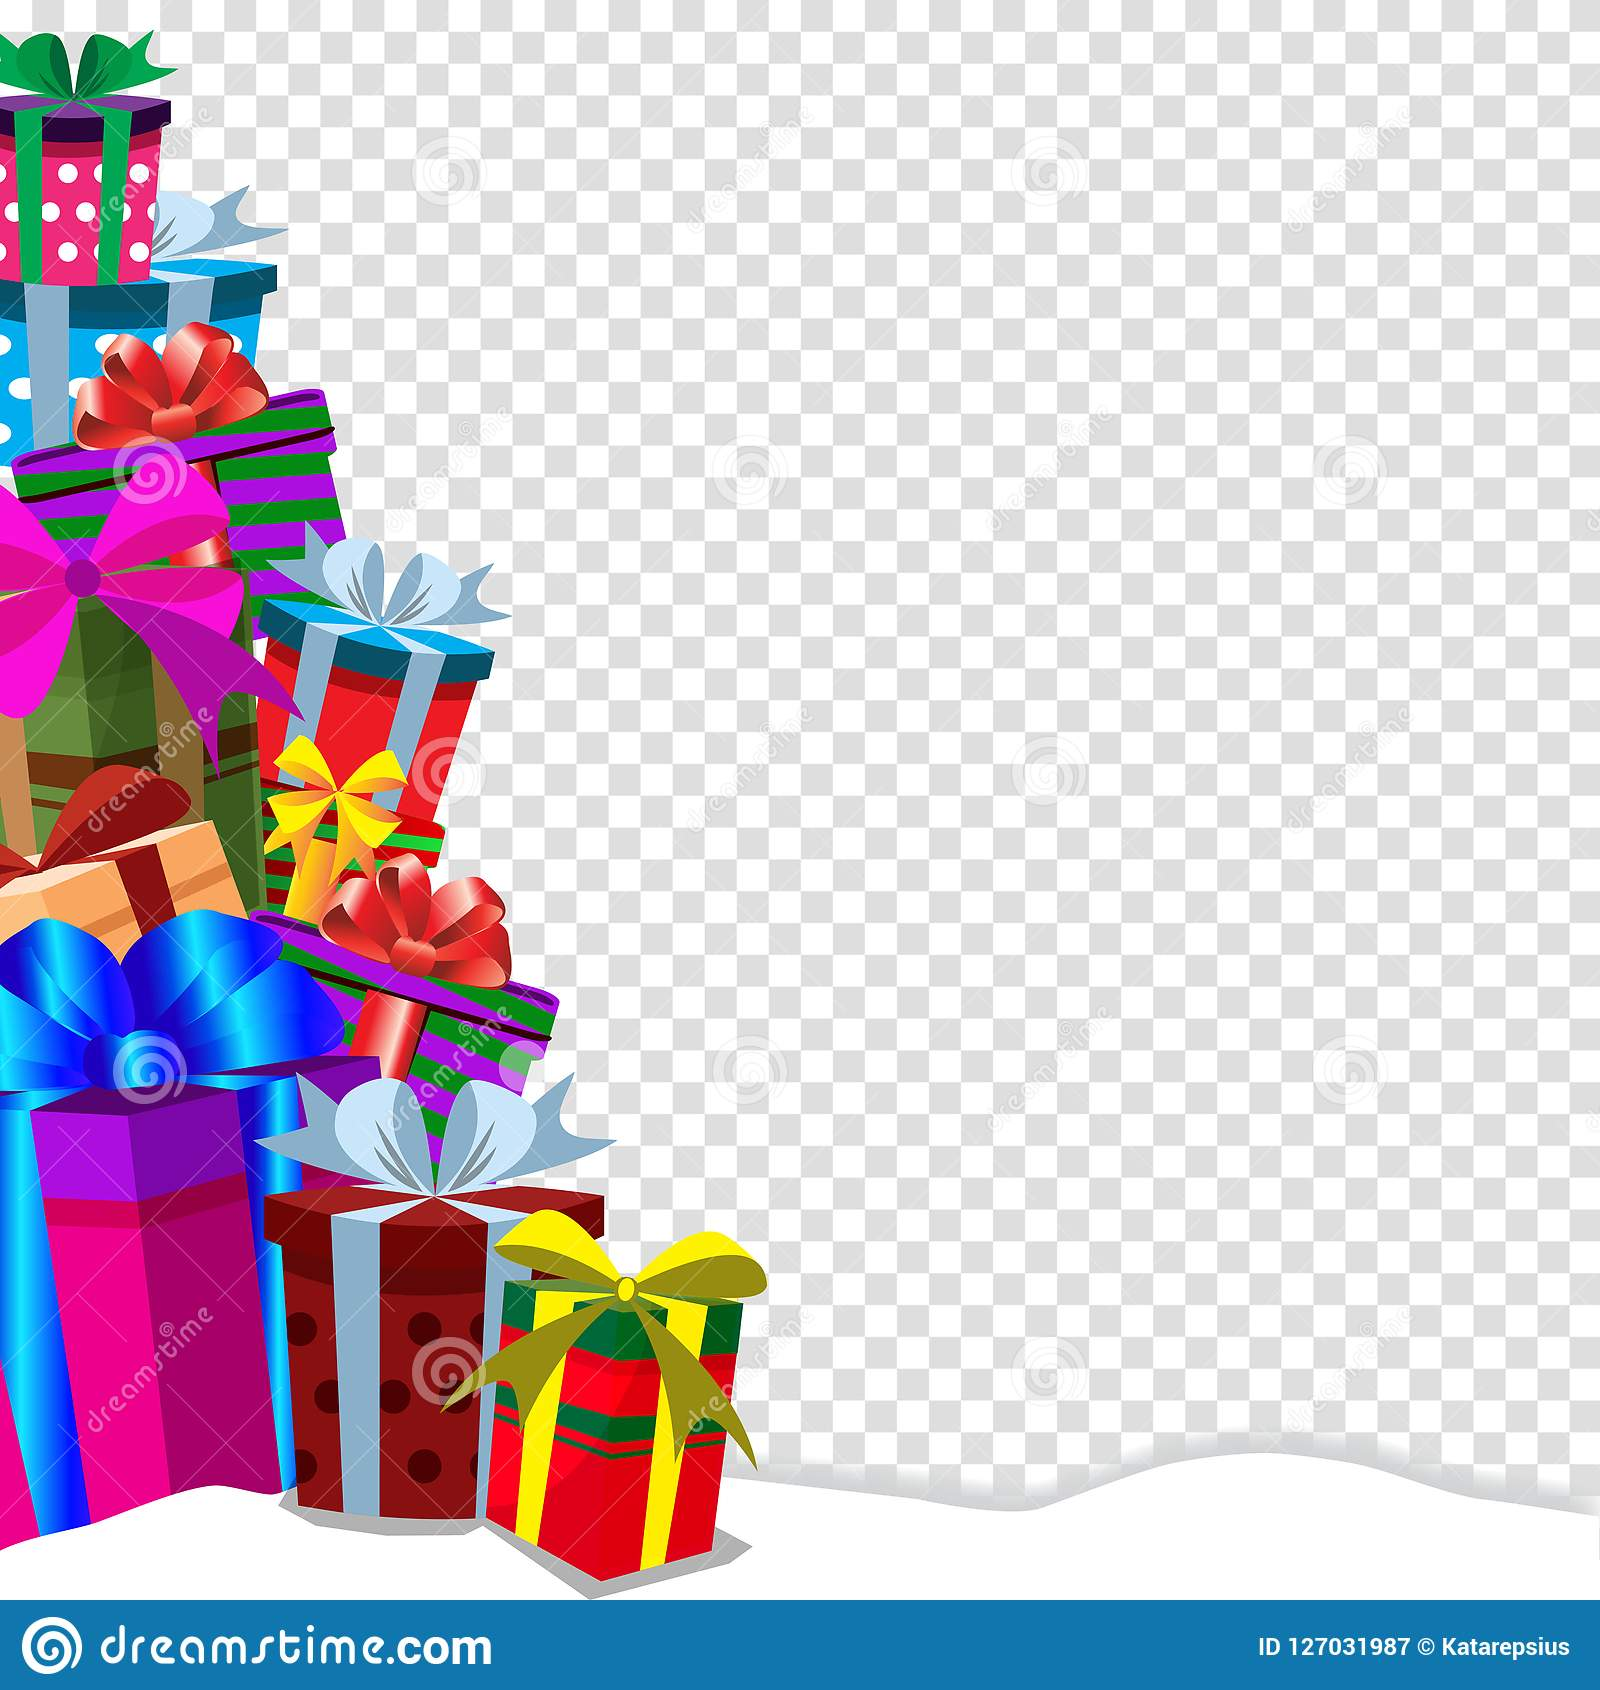 Christmas Gift Clipart Transparent Background